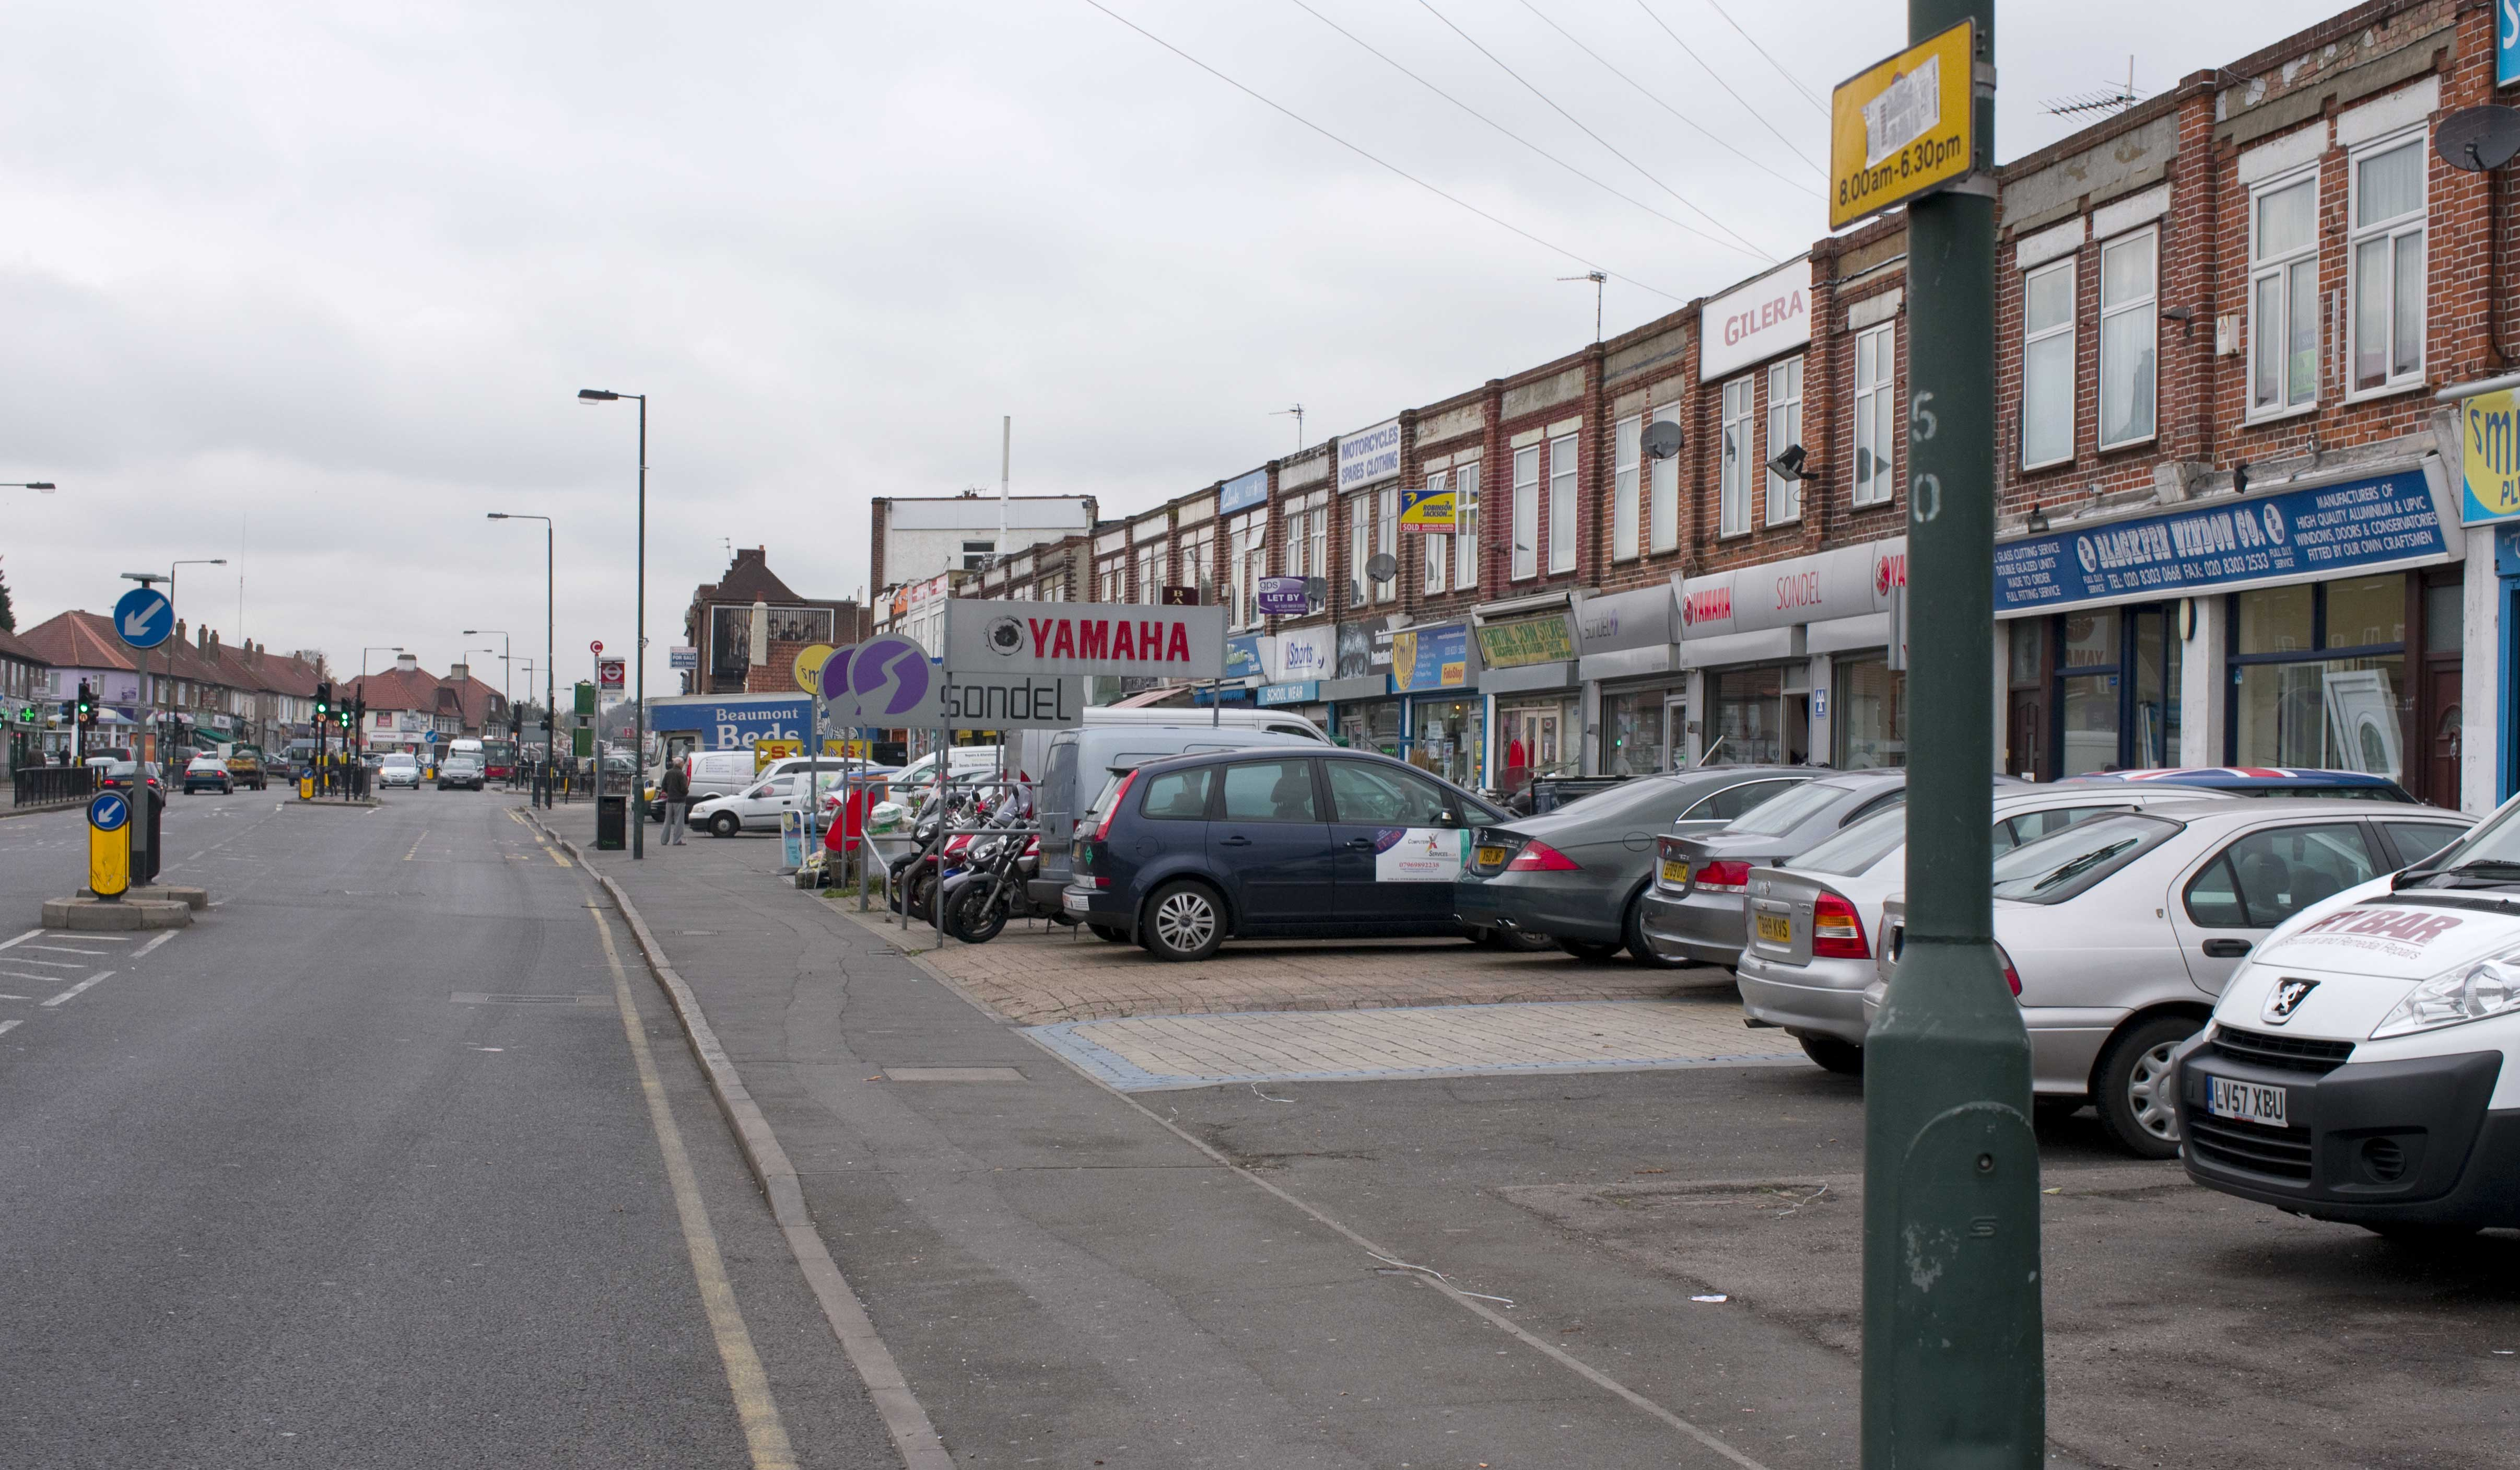 40+ shops, seven parking spaces